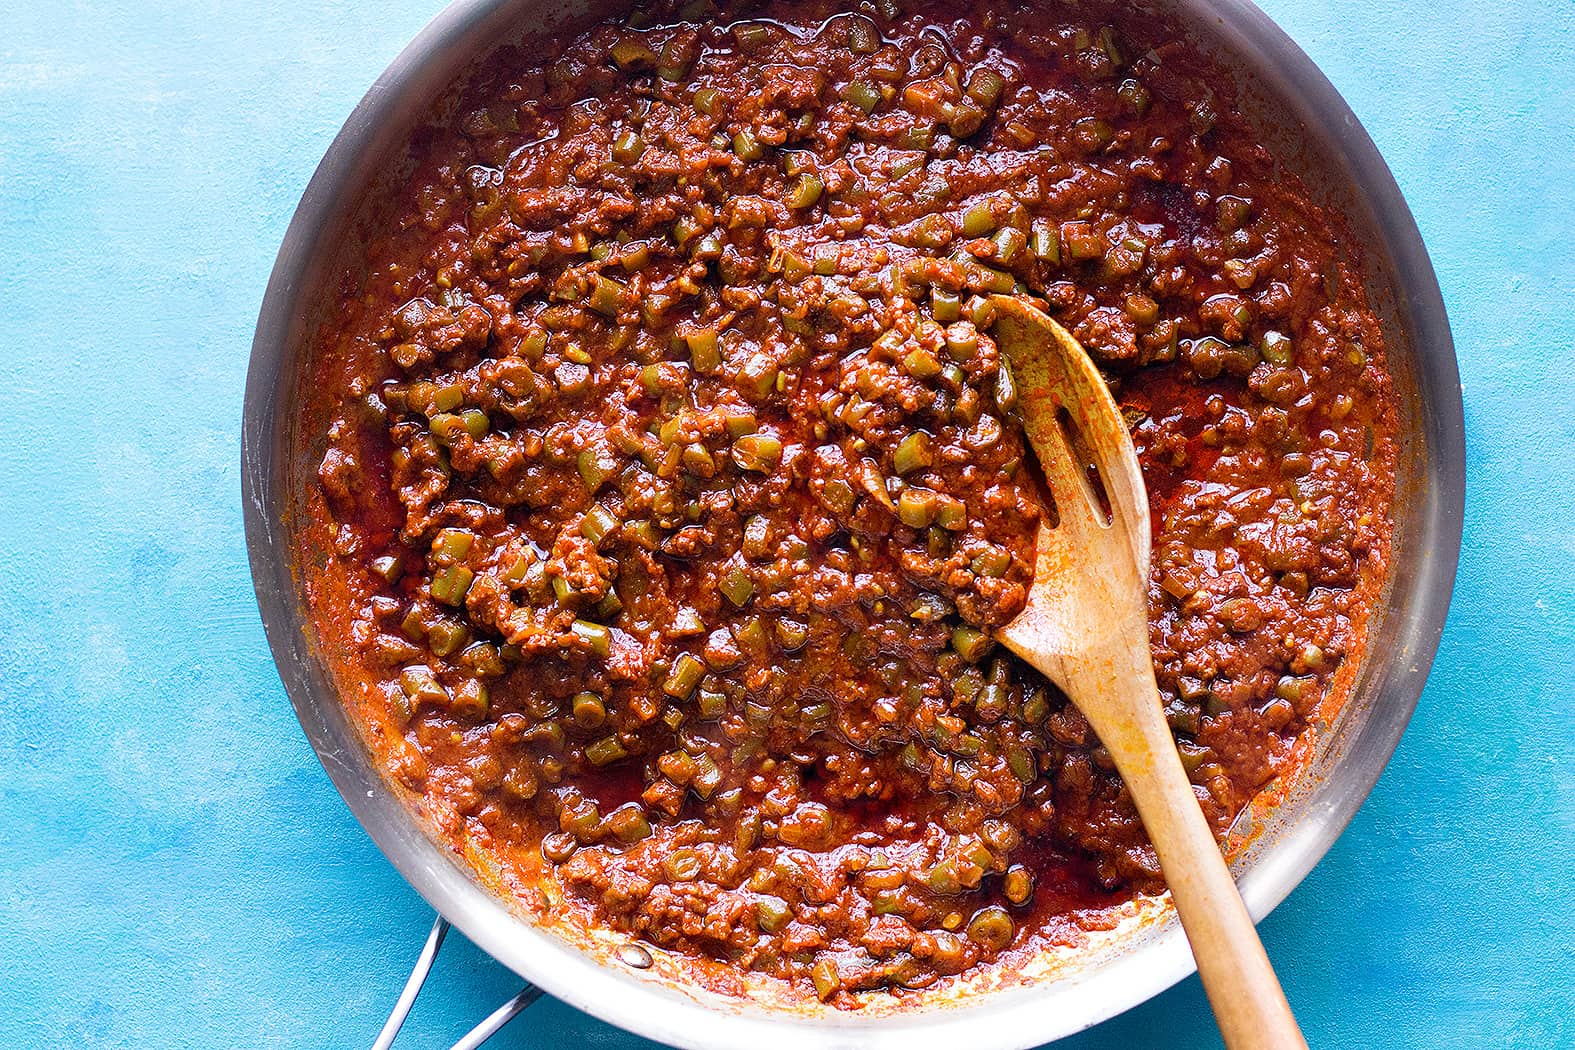 to make loobia polo filling, saute onion, beef and spices add tomato paste and water and beans. Cook completely.